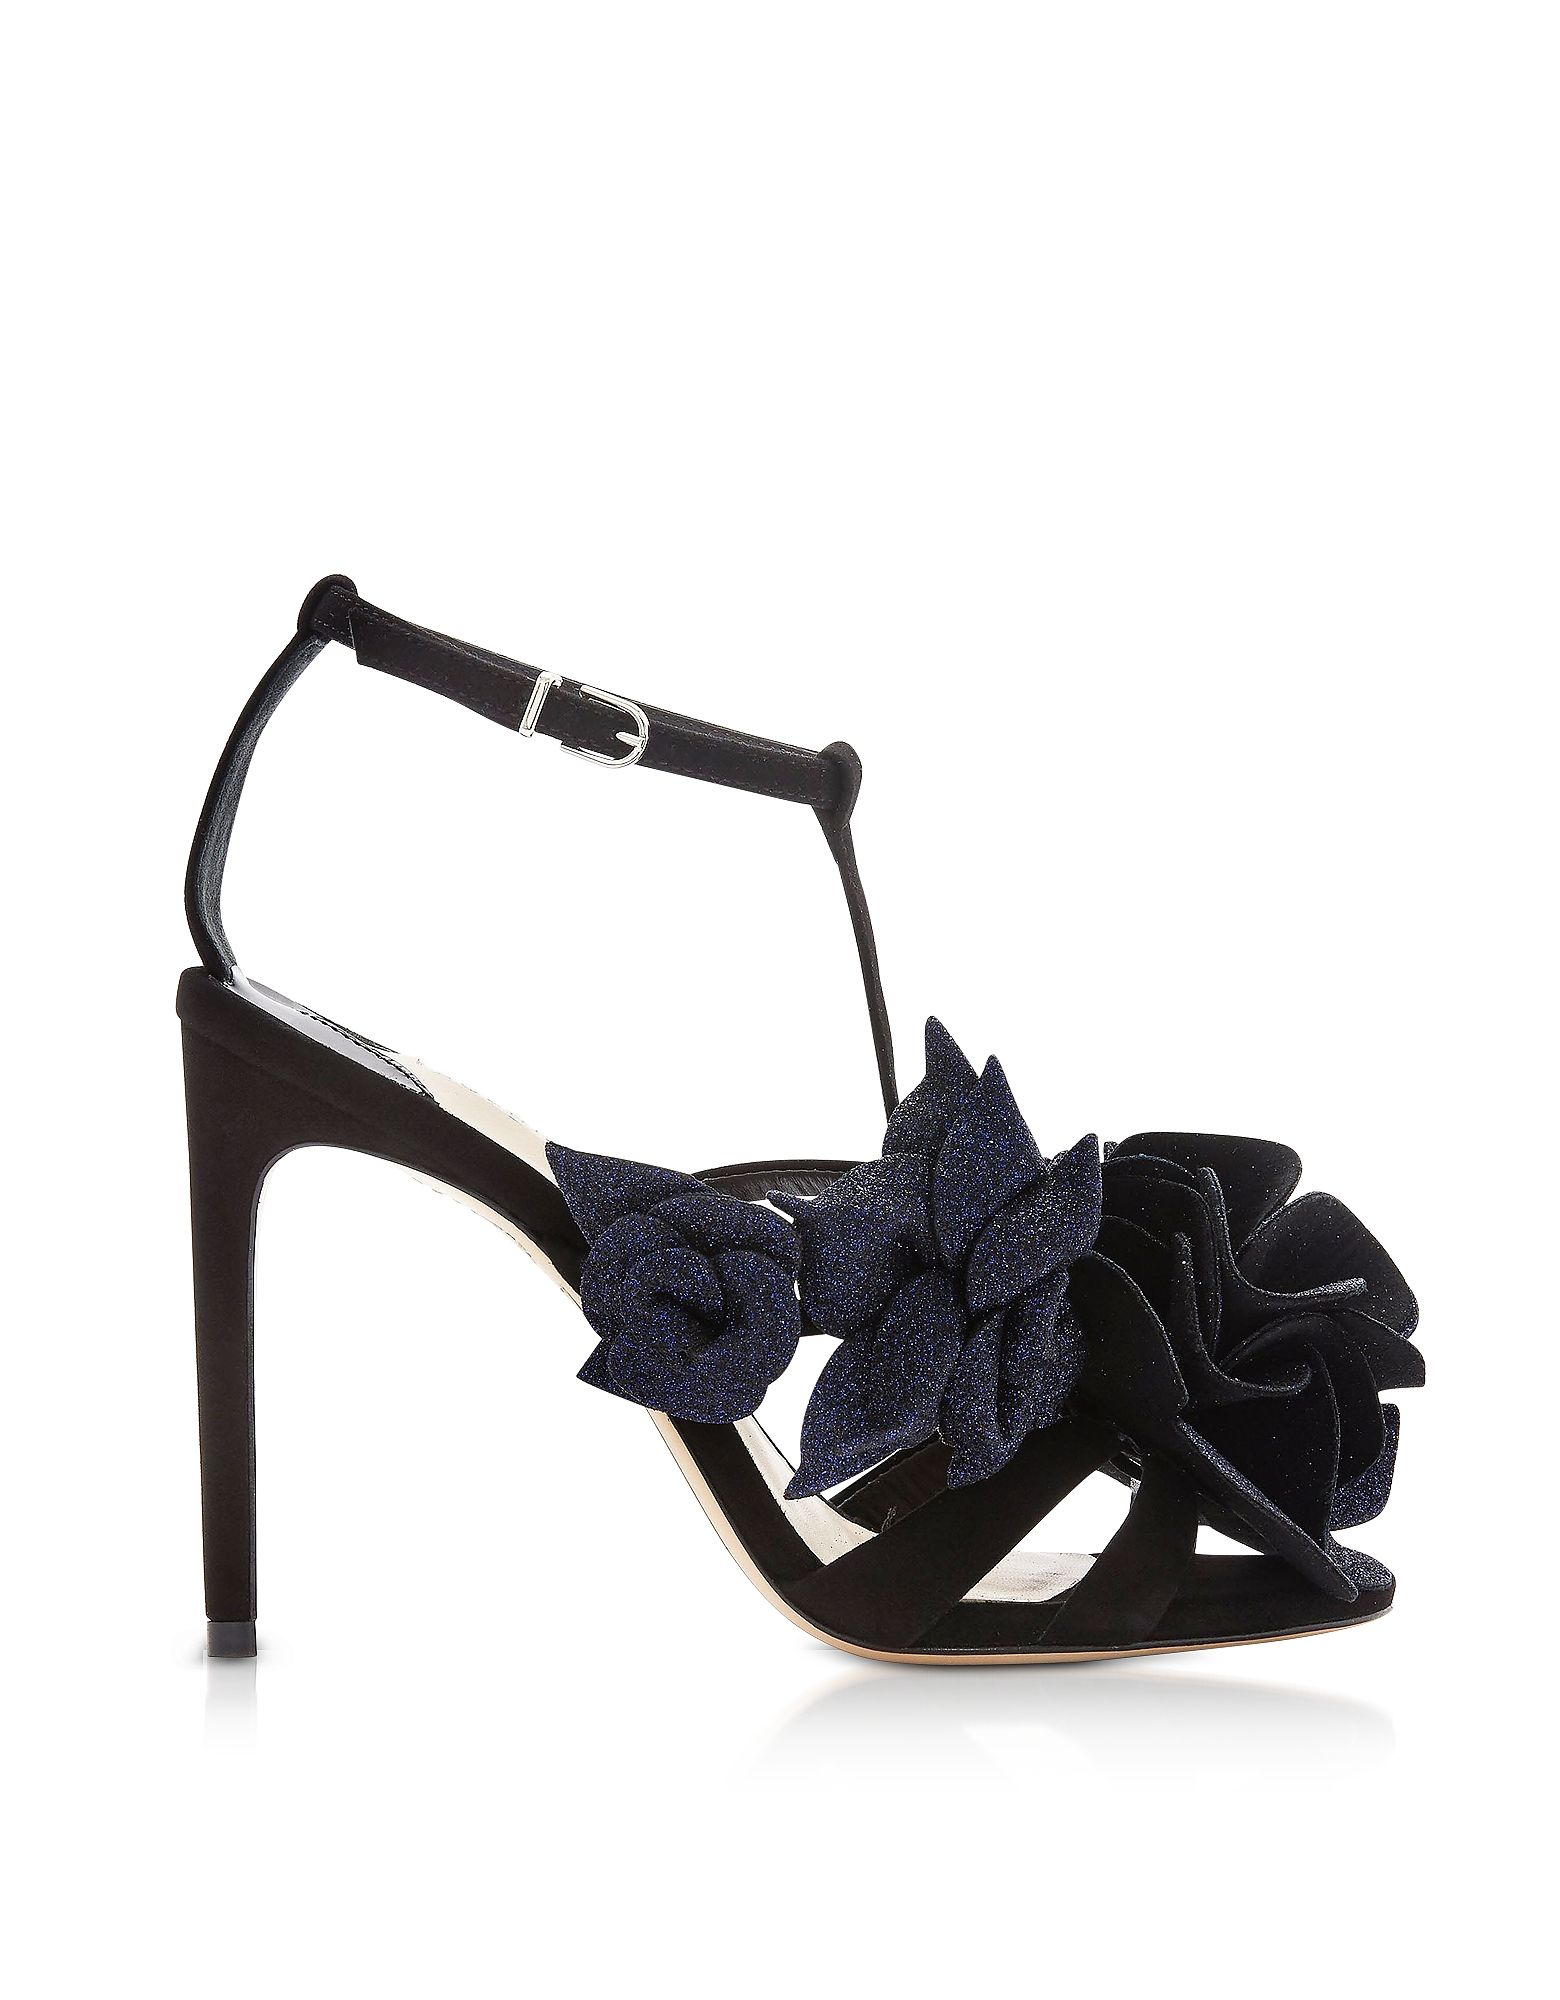 Sophia Webster Black Leather Sandals